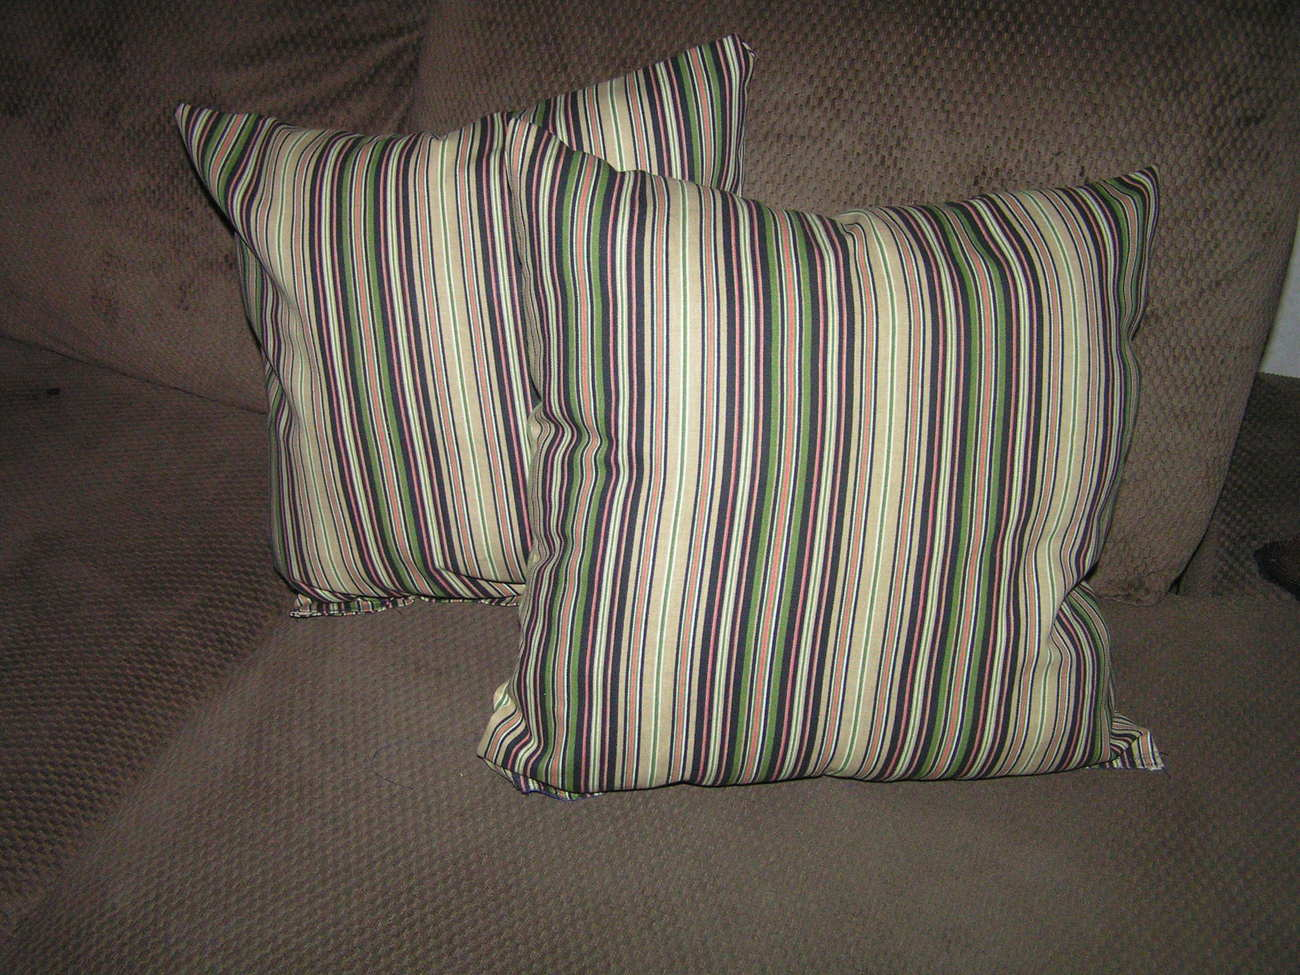 2 stripe pillows size 18 x 18 great for sofa or bed multicolored stripes